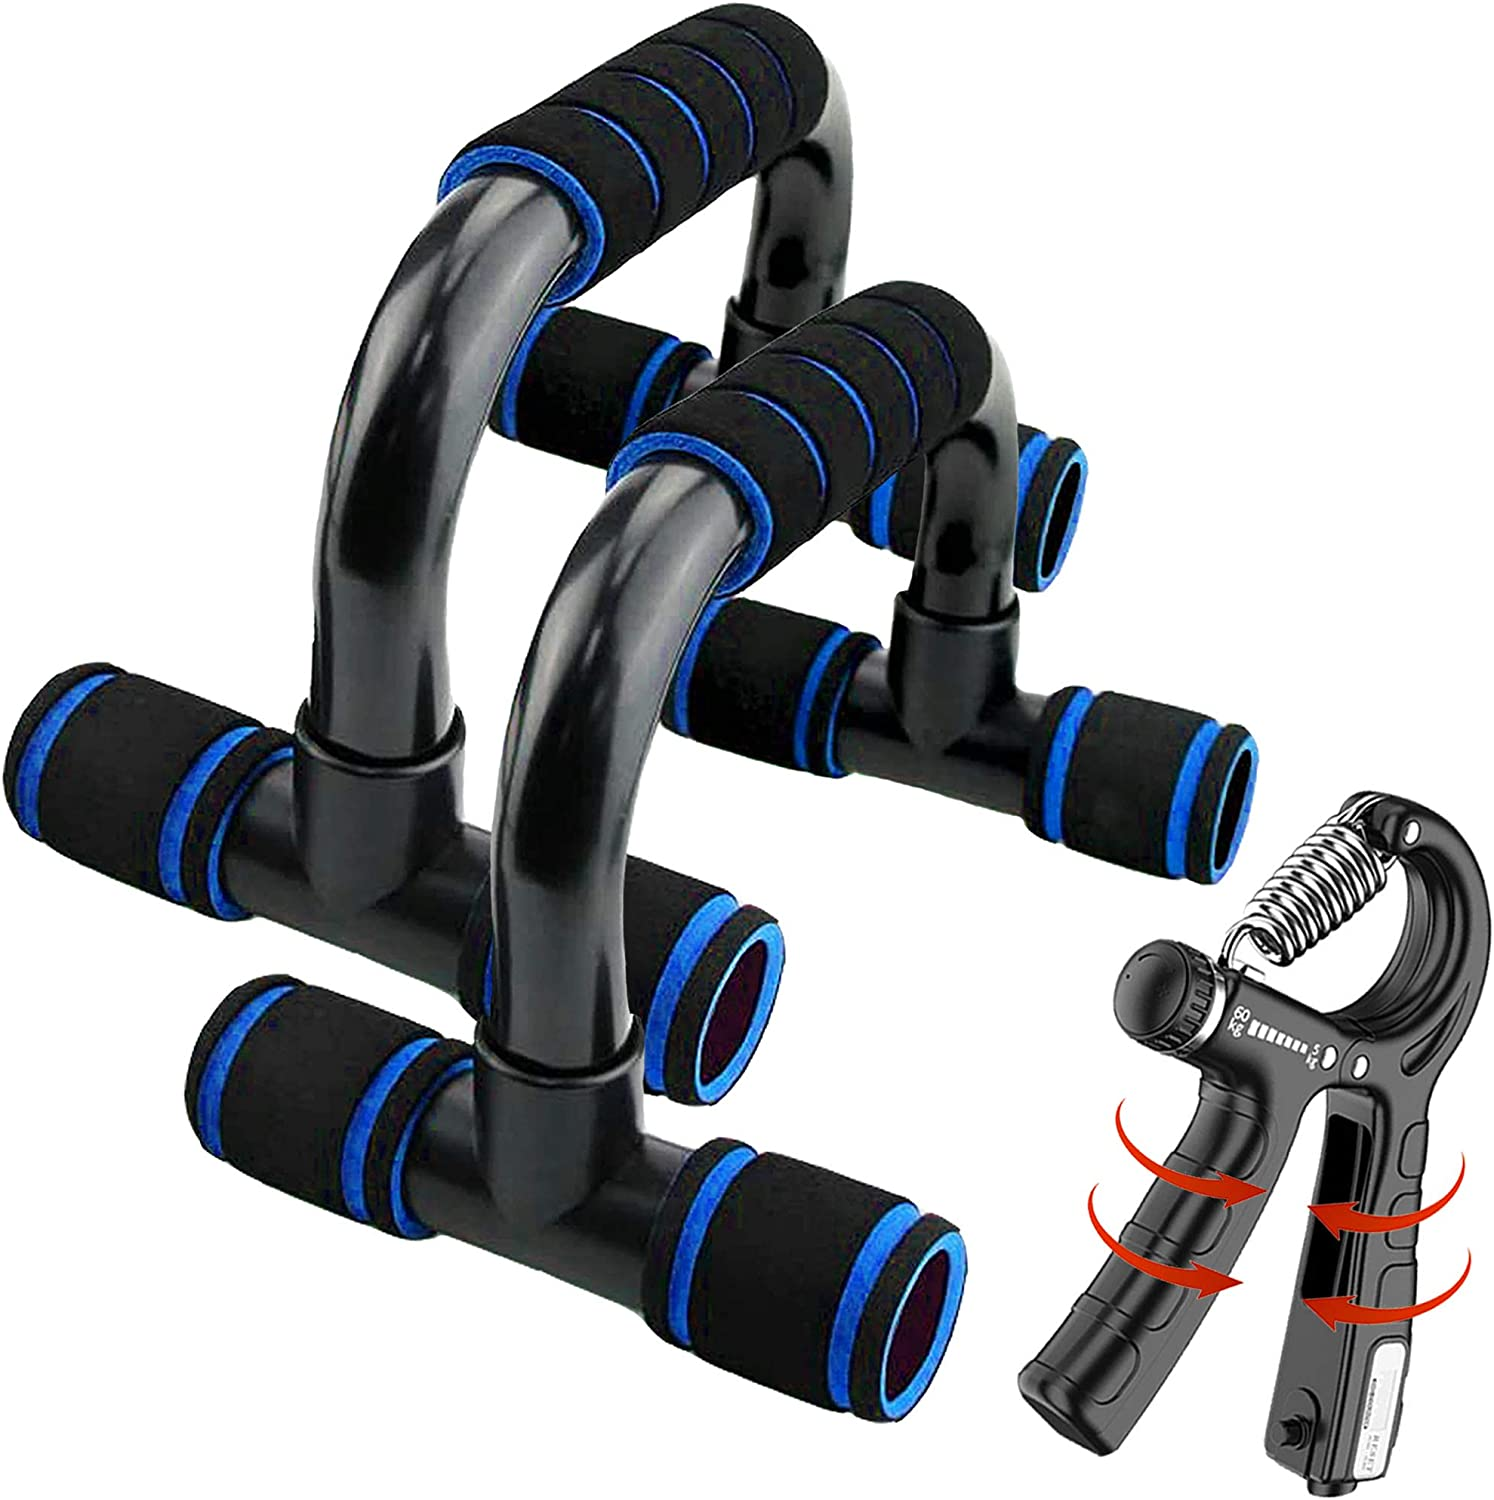 2-in-1 Premium Push Up Bars & Adjustable Hand Grip Strengthener (11-132 LB), Portable Push Ups for Floor with Cushioned Foam Grip & Non-Slip Sturdy Structure for Men/Women for Home Workout